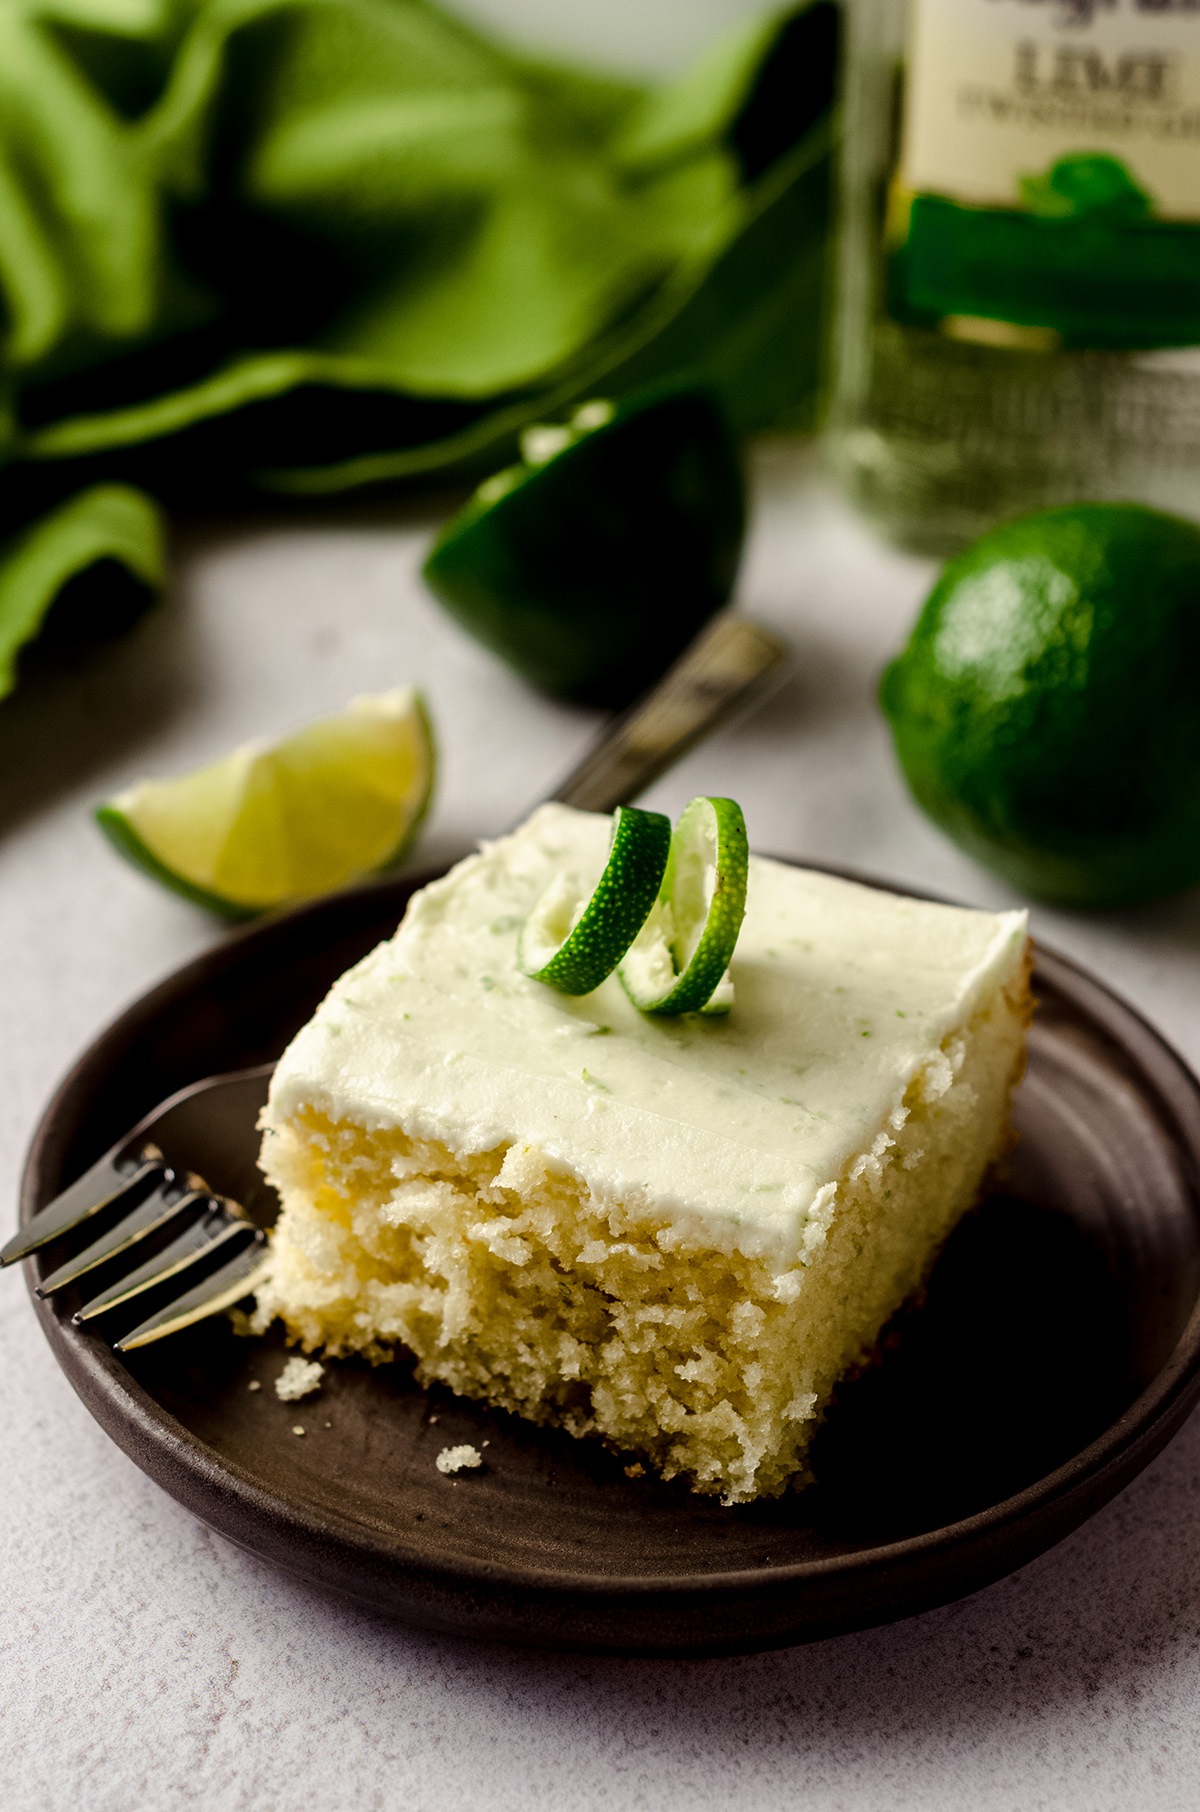 slice of gin and tonic cake sitting on a plate